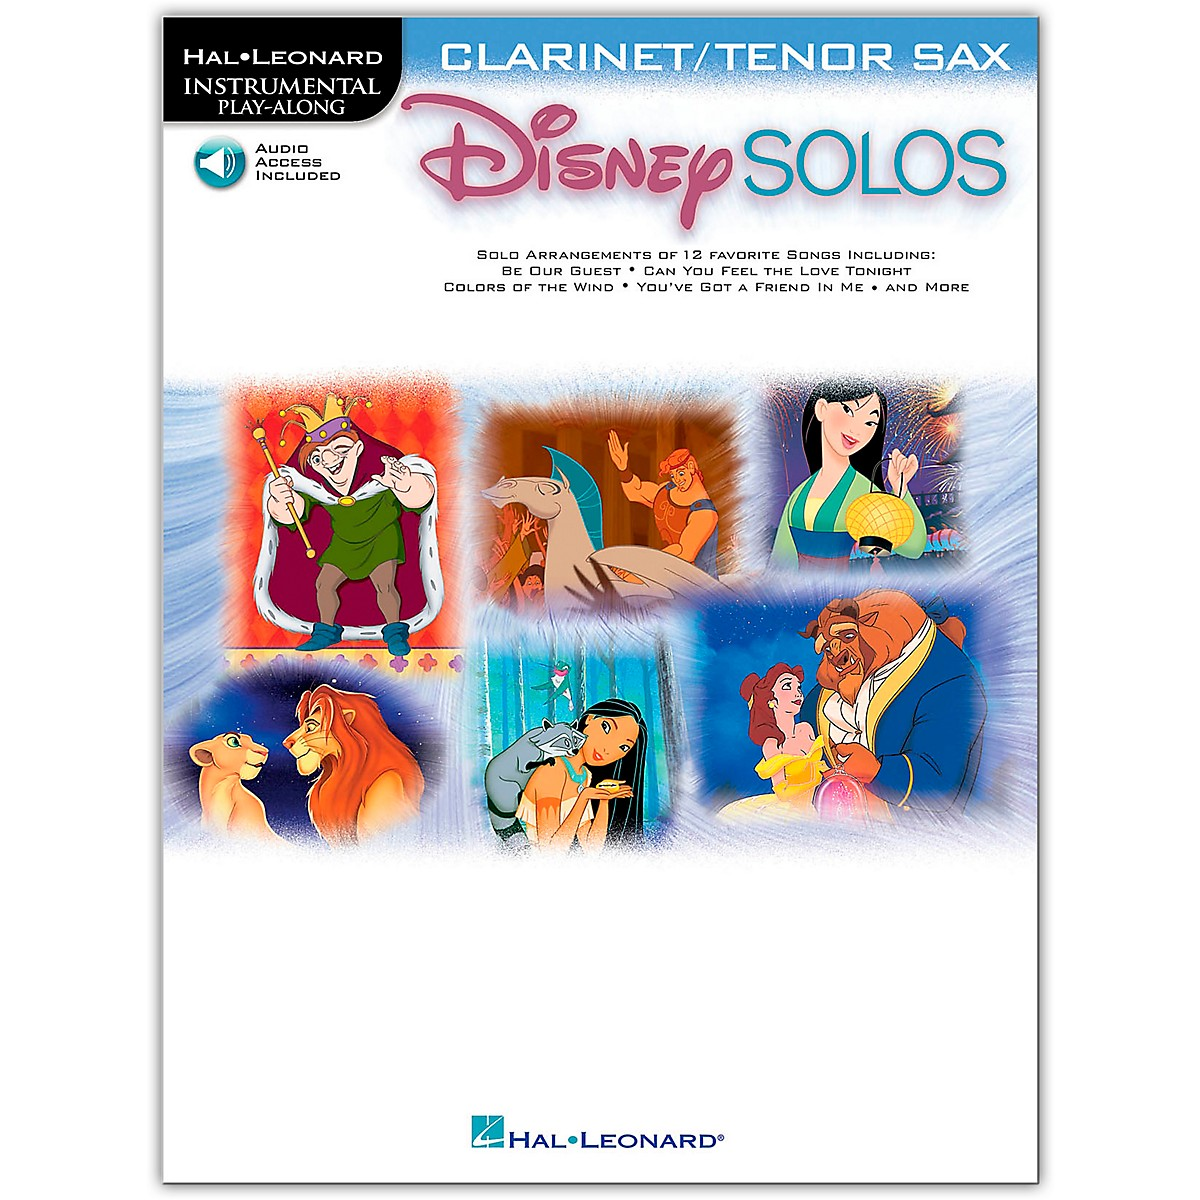 Hal Leonard Play-Along Disney Solos Book with Online Audio-Clarinet